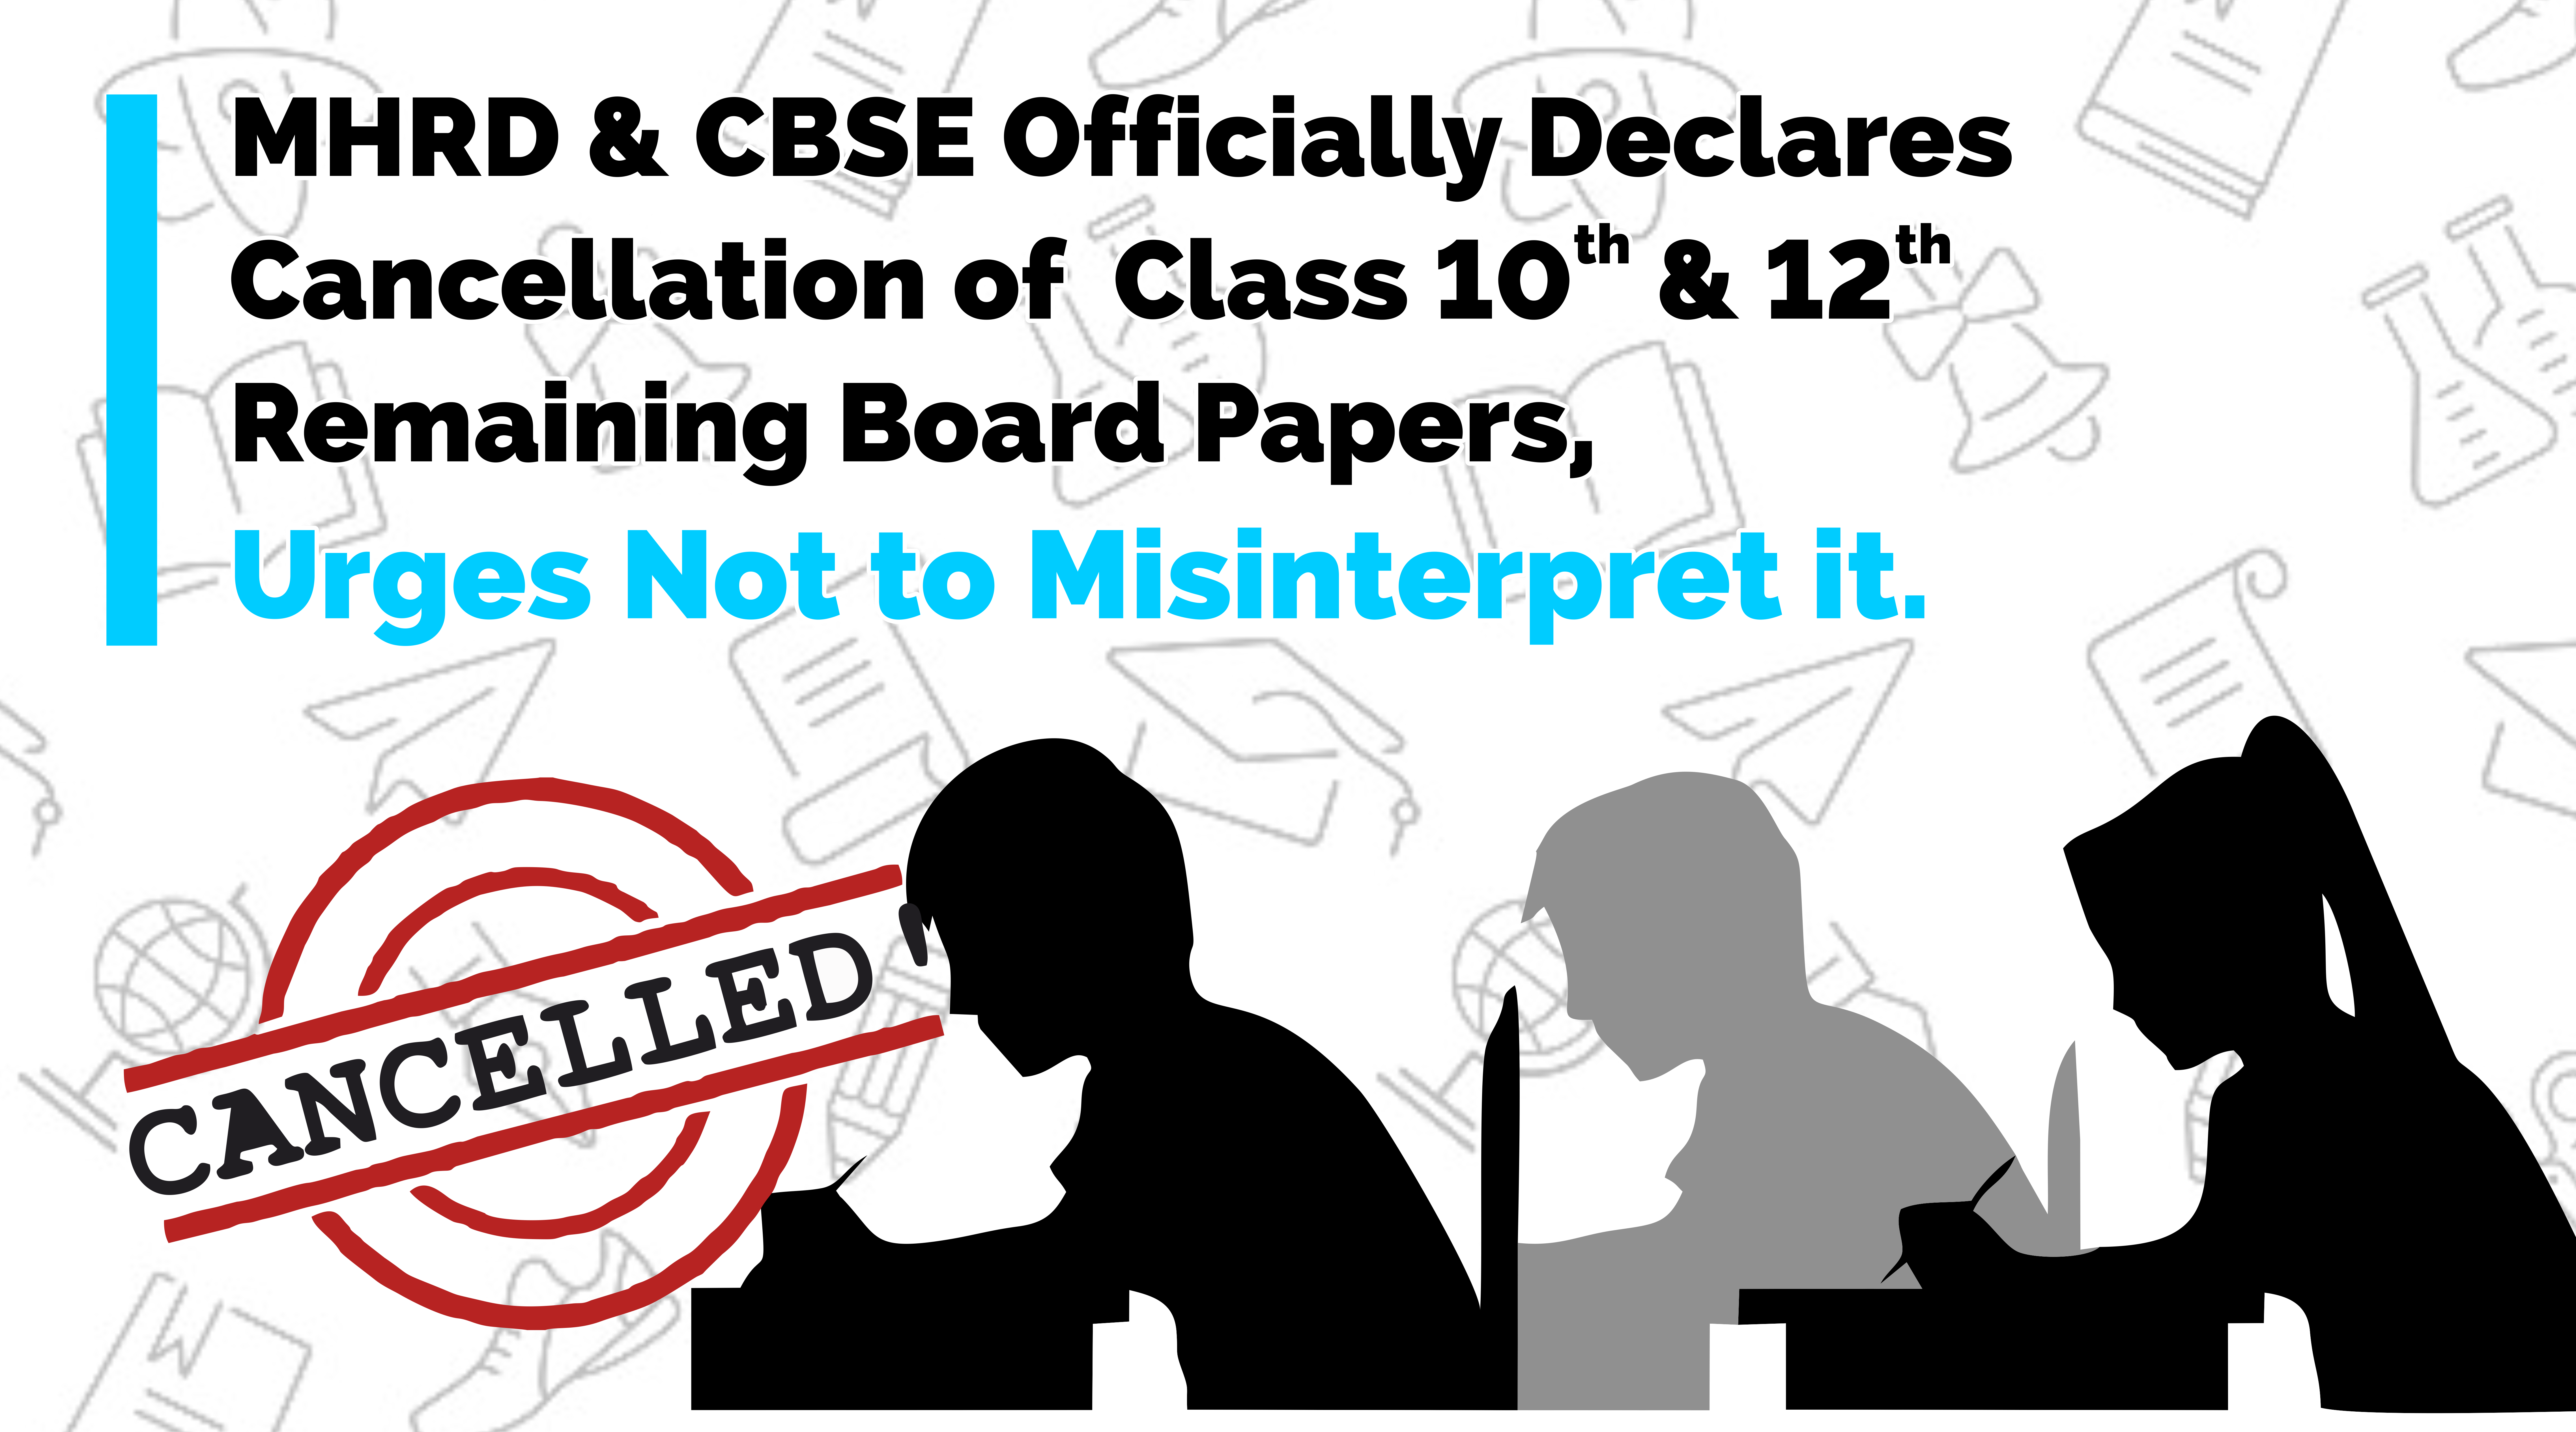 MHRD & CBSE Officially Declares Cancellation of Class 10th & 12th Remaining Board Papers, Urges Not to Misinterpret it.